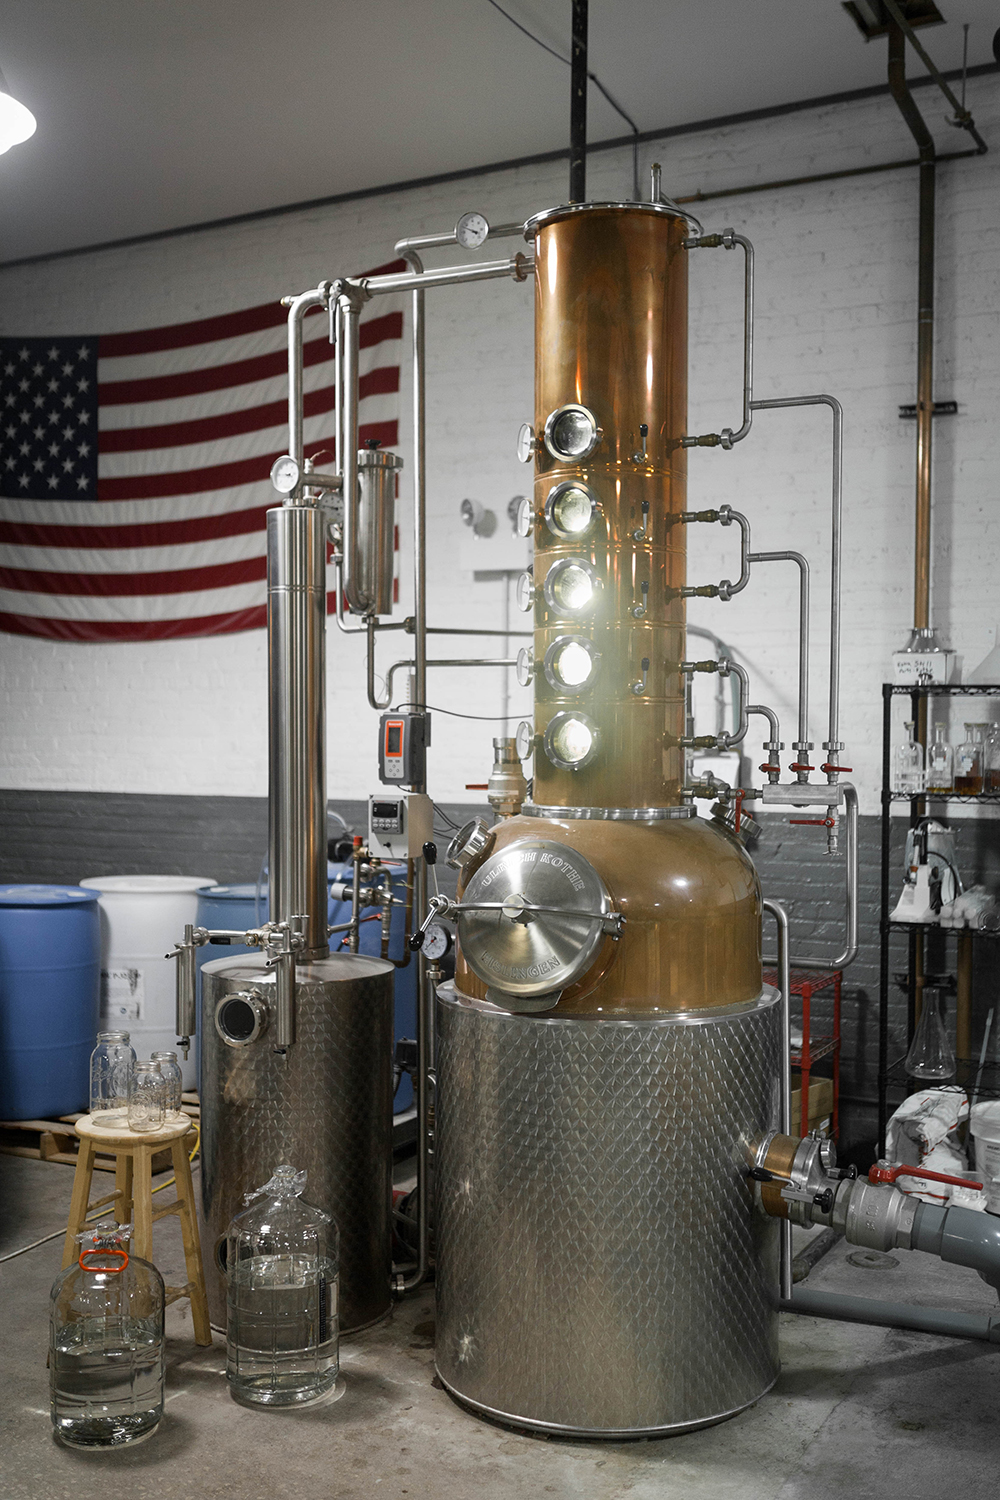 The still at Maplewood Brewery // Photo courtesy of Maplewood Brewery